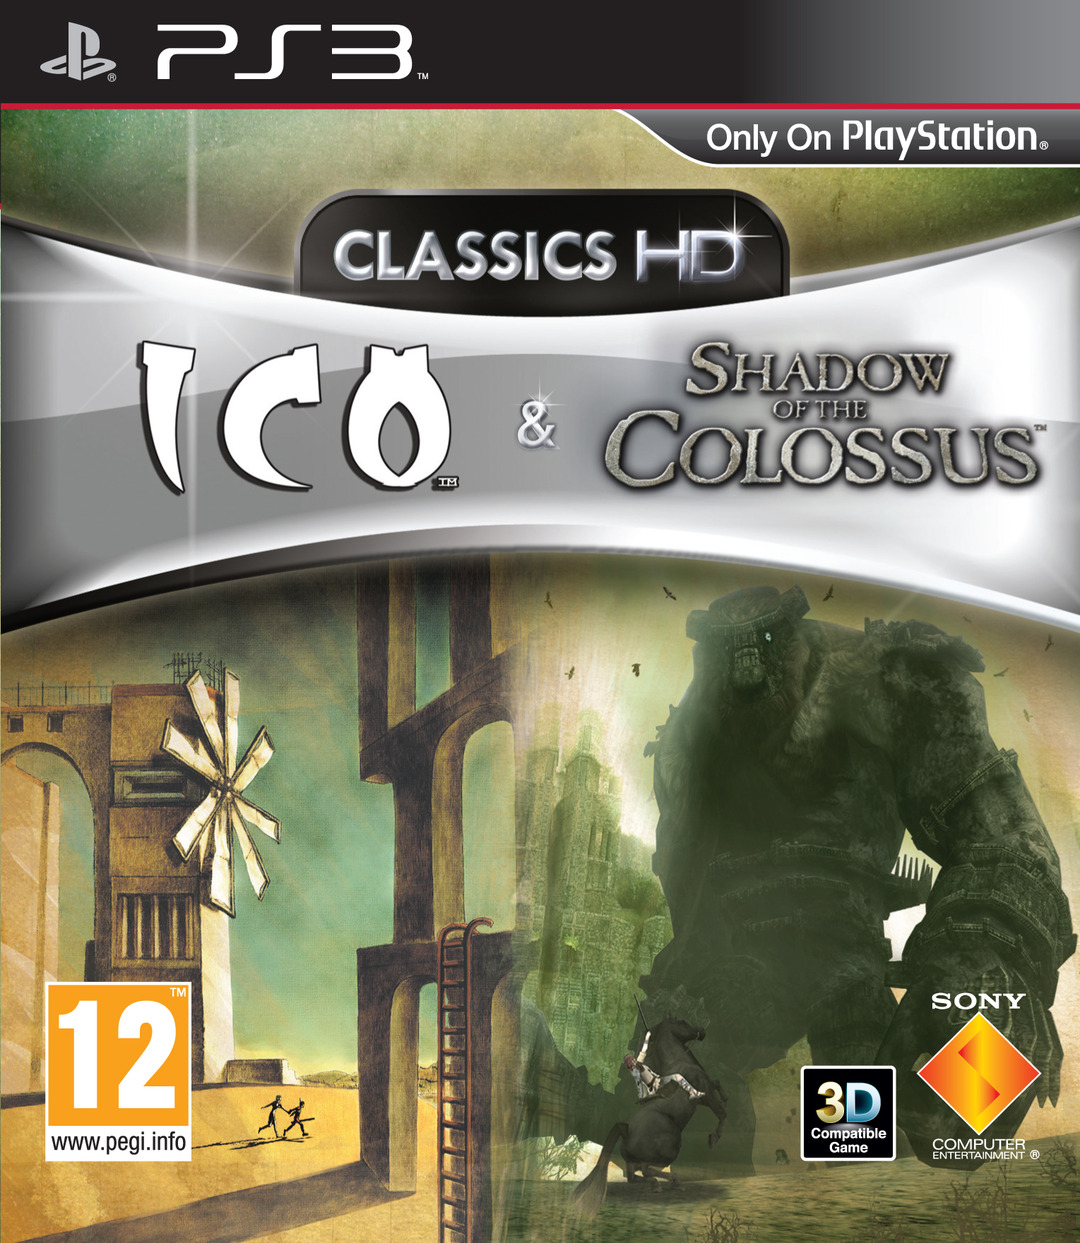 jaquette du jeu vidéo Ico & Shadow of the Colossus